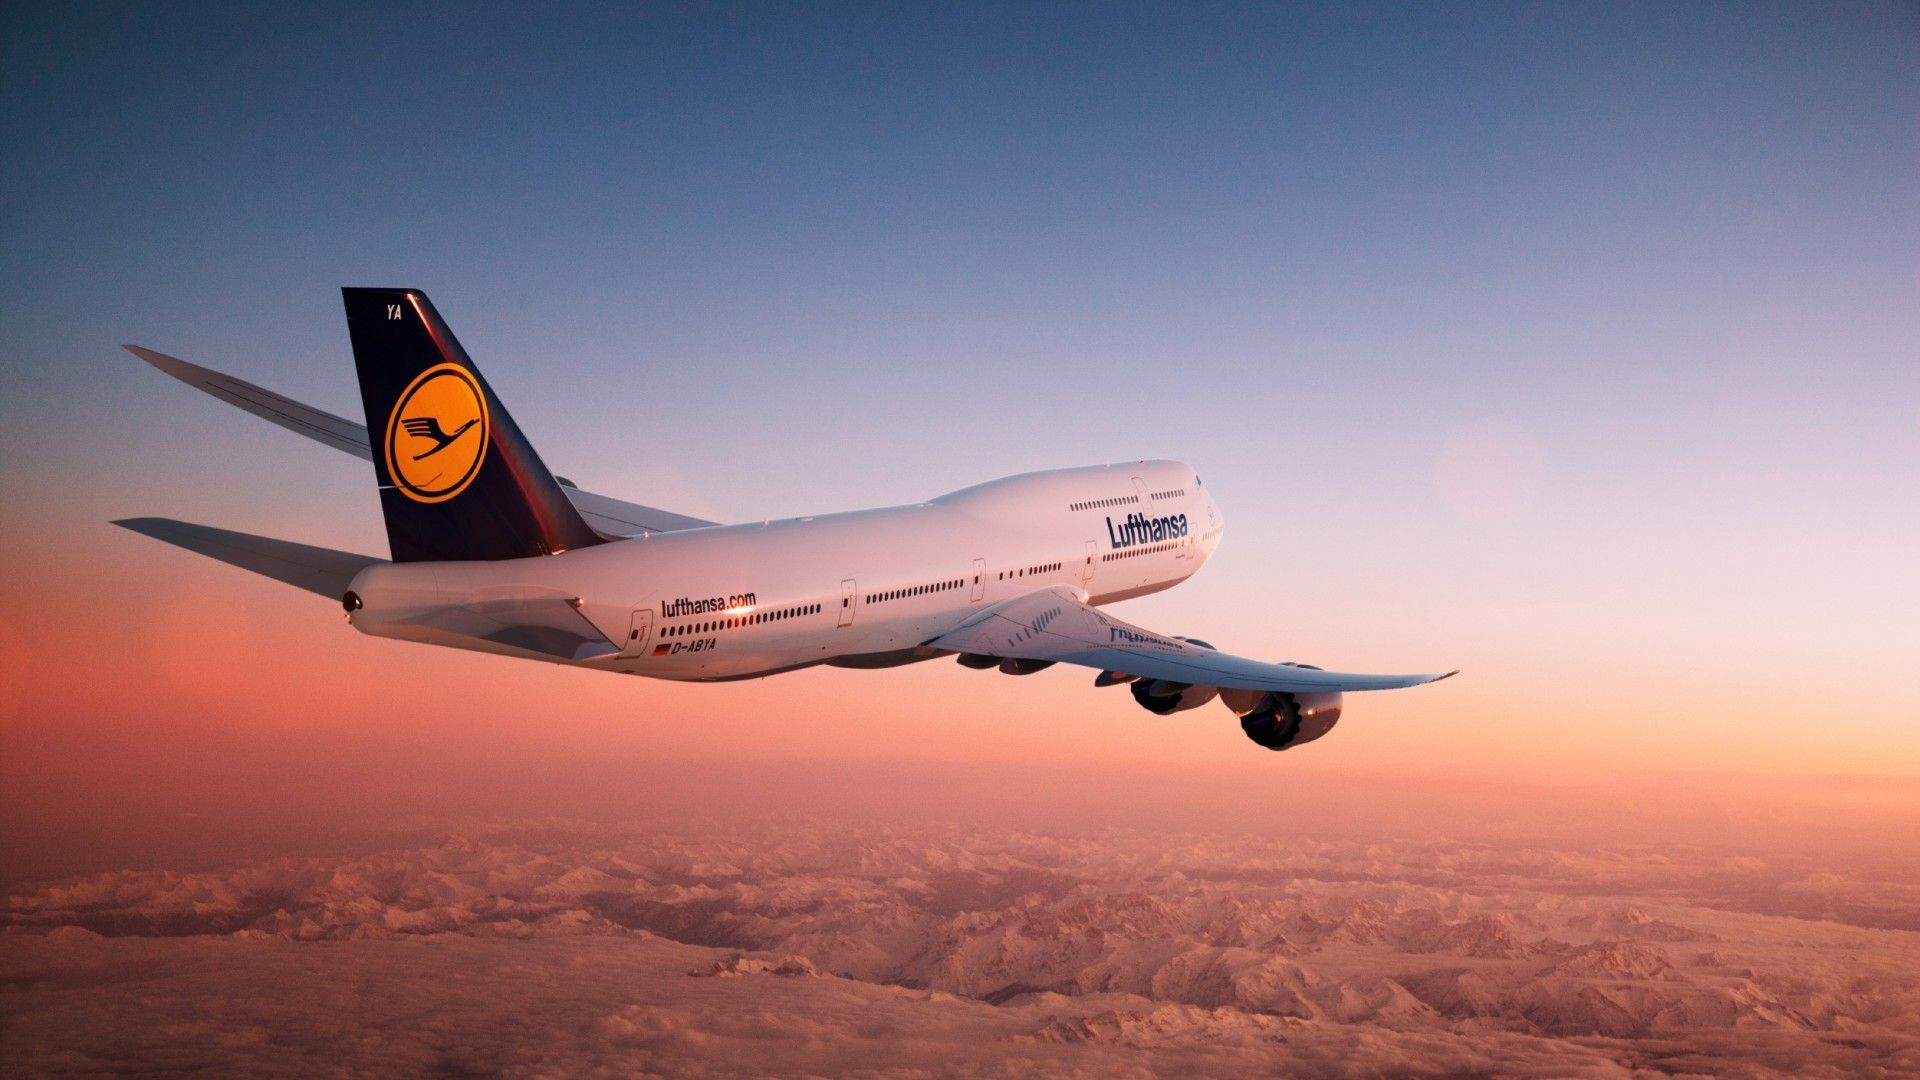 boeing 747 hd wallpapers free download | best games wallpapers